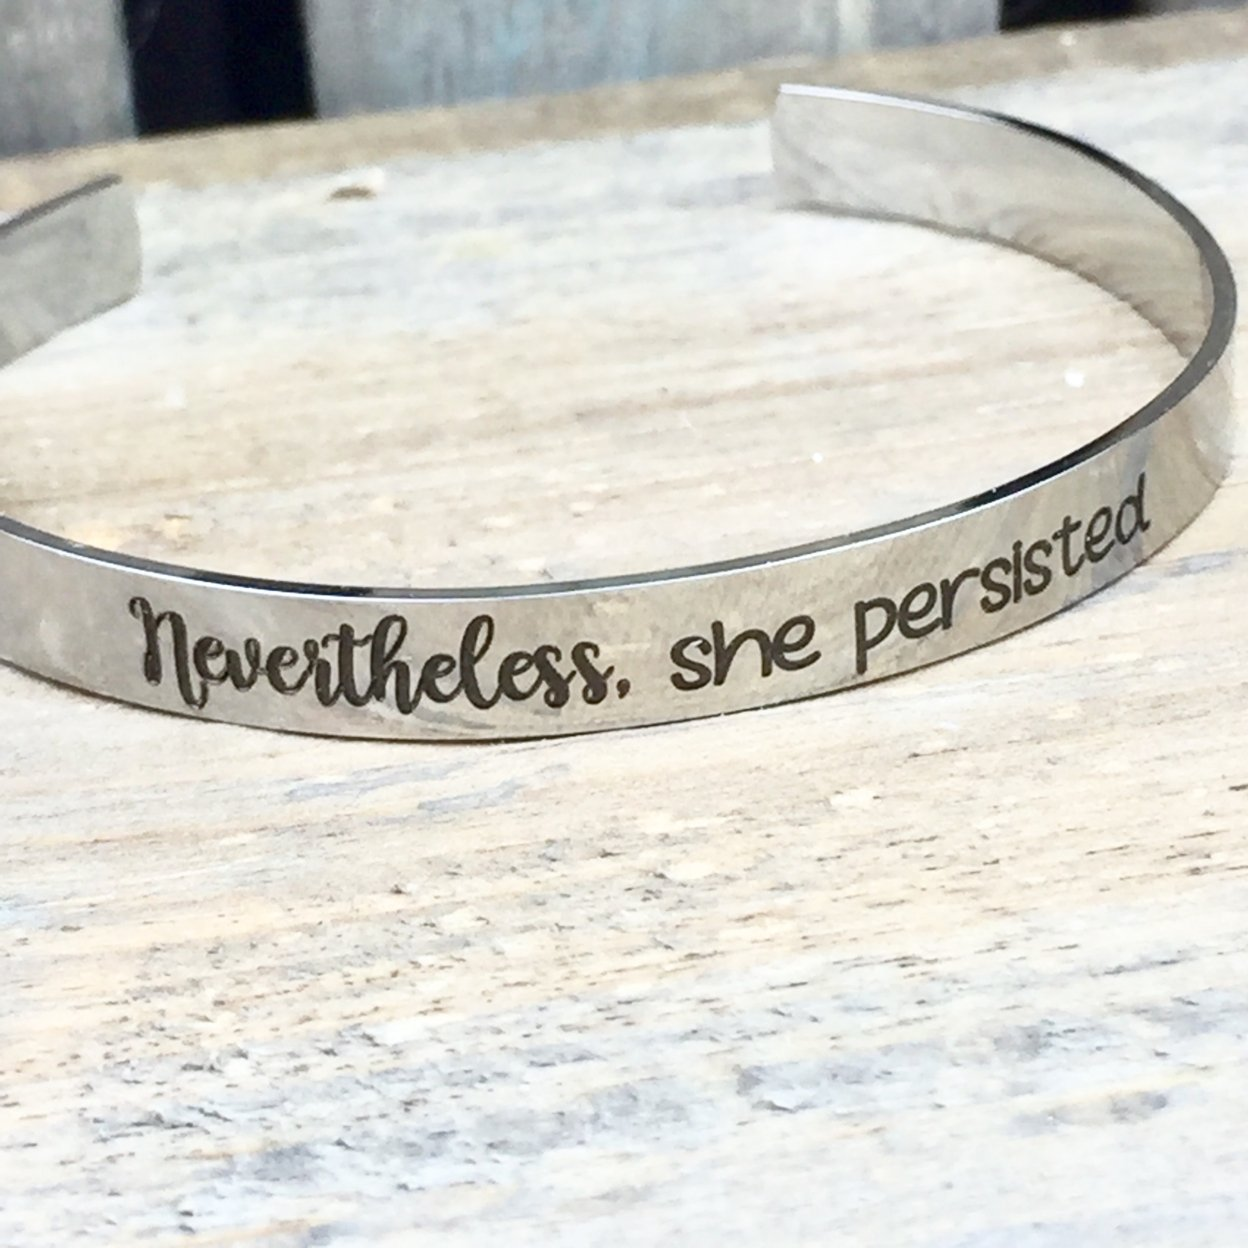 Nevertheless, She Persisted Stainless Steel Cuff Bracelet, Resistance, Equality, Womens Rights, Elizabeth Warren, Still With Her Add Engraving To Underside Of Bracelet (25 Text Maximum)